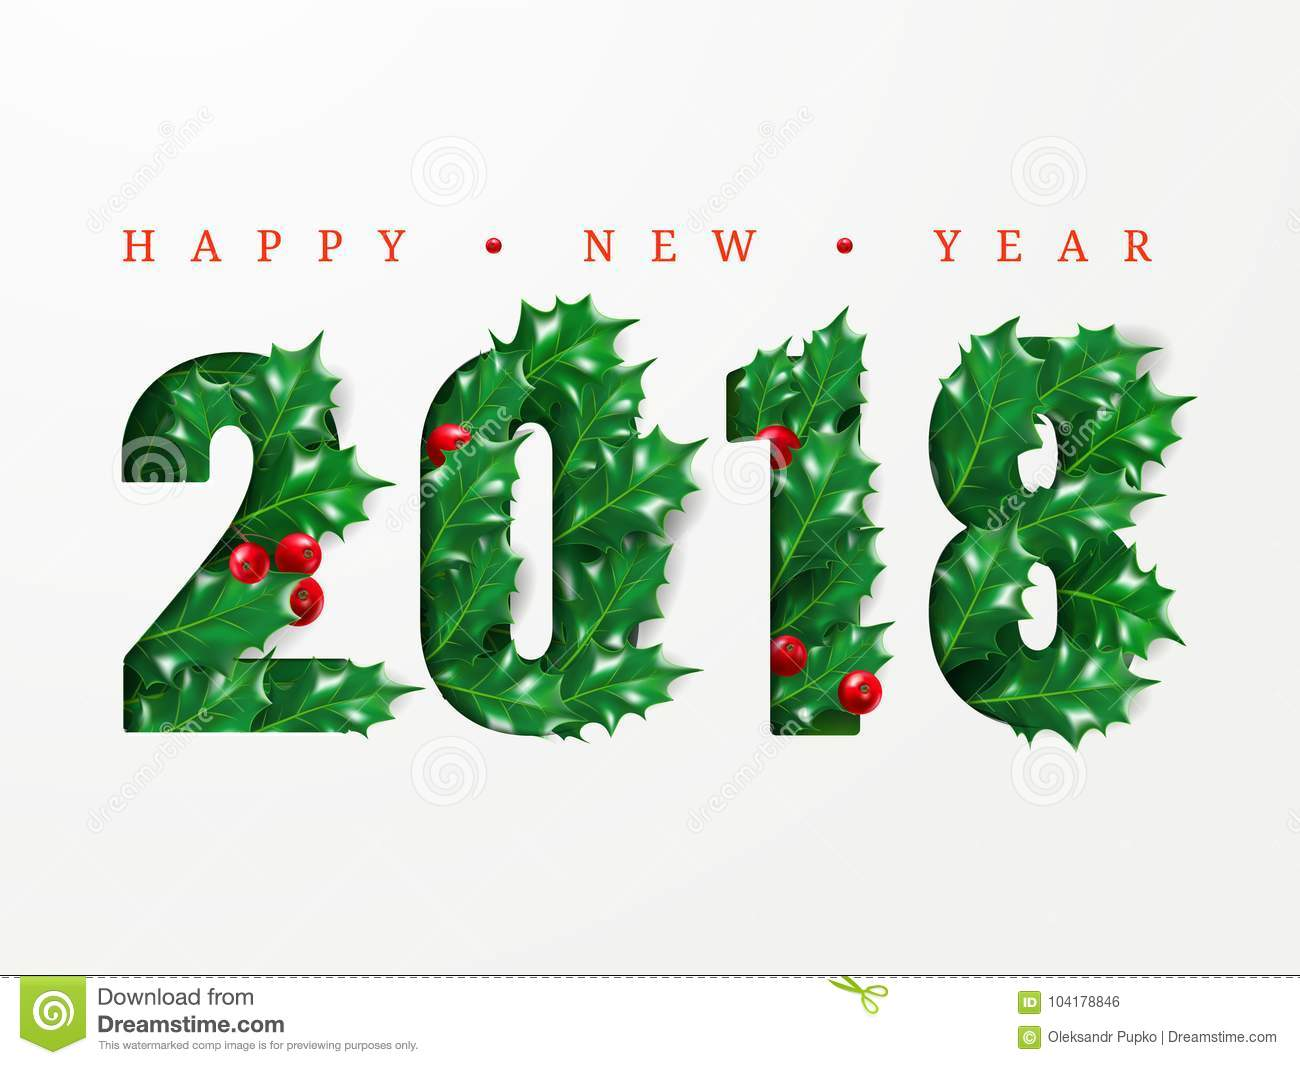 2018 happy new year numbers cut from paper decorated with realistic leaves of holly and